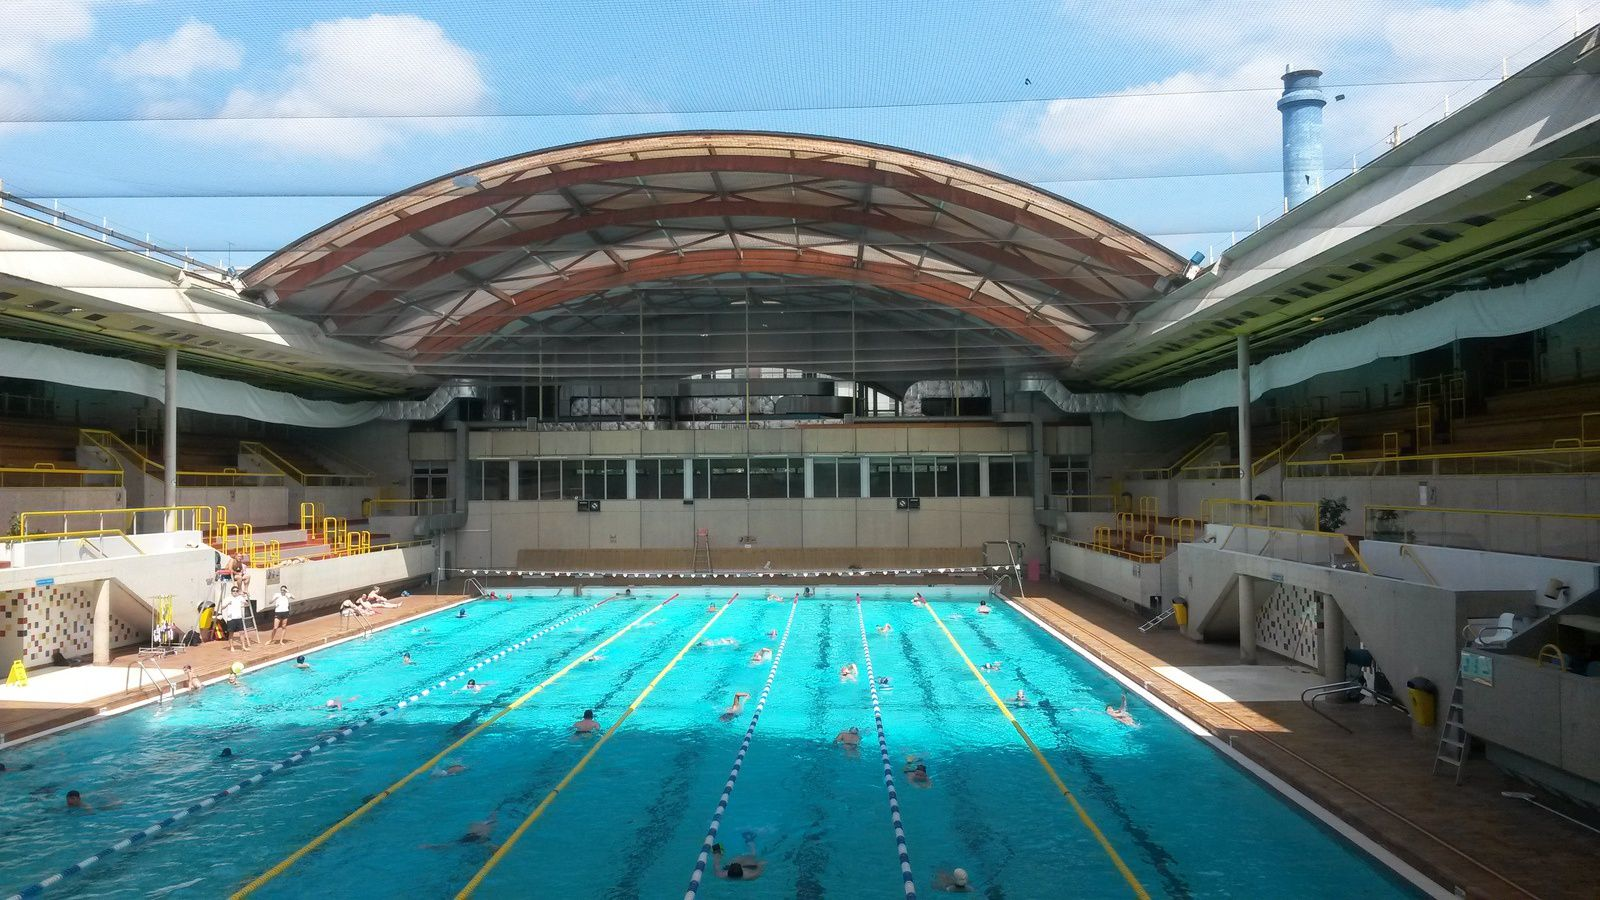 Pool talk a dane in france for Piscine georges vallerey